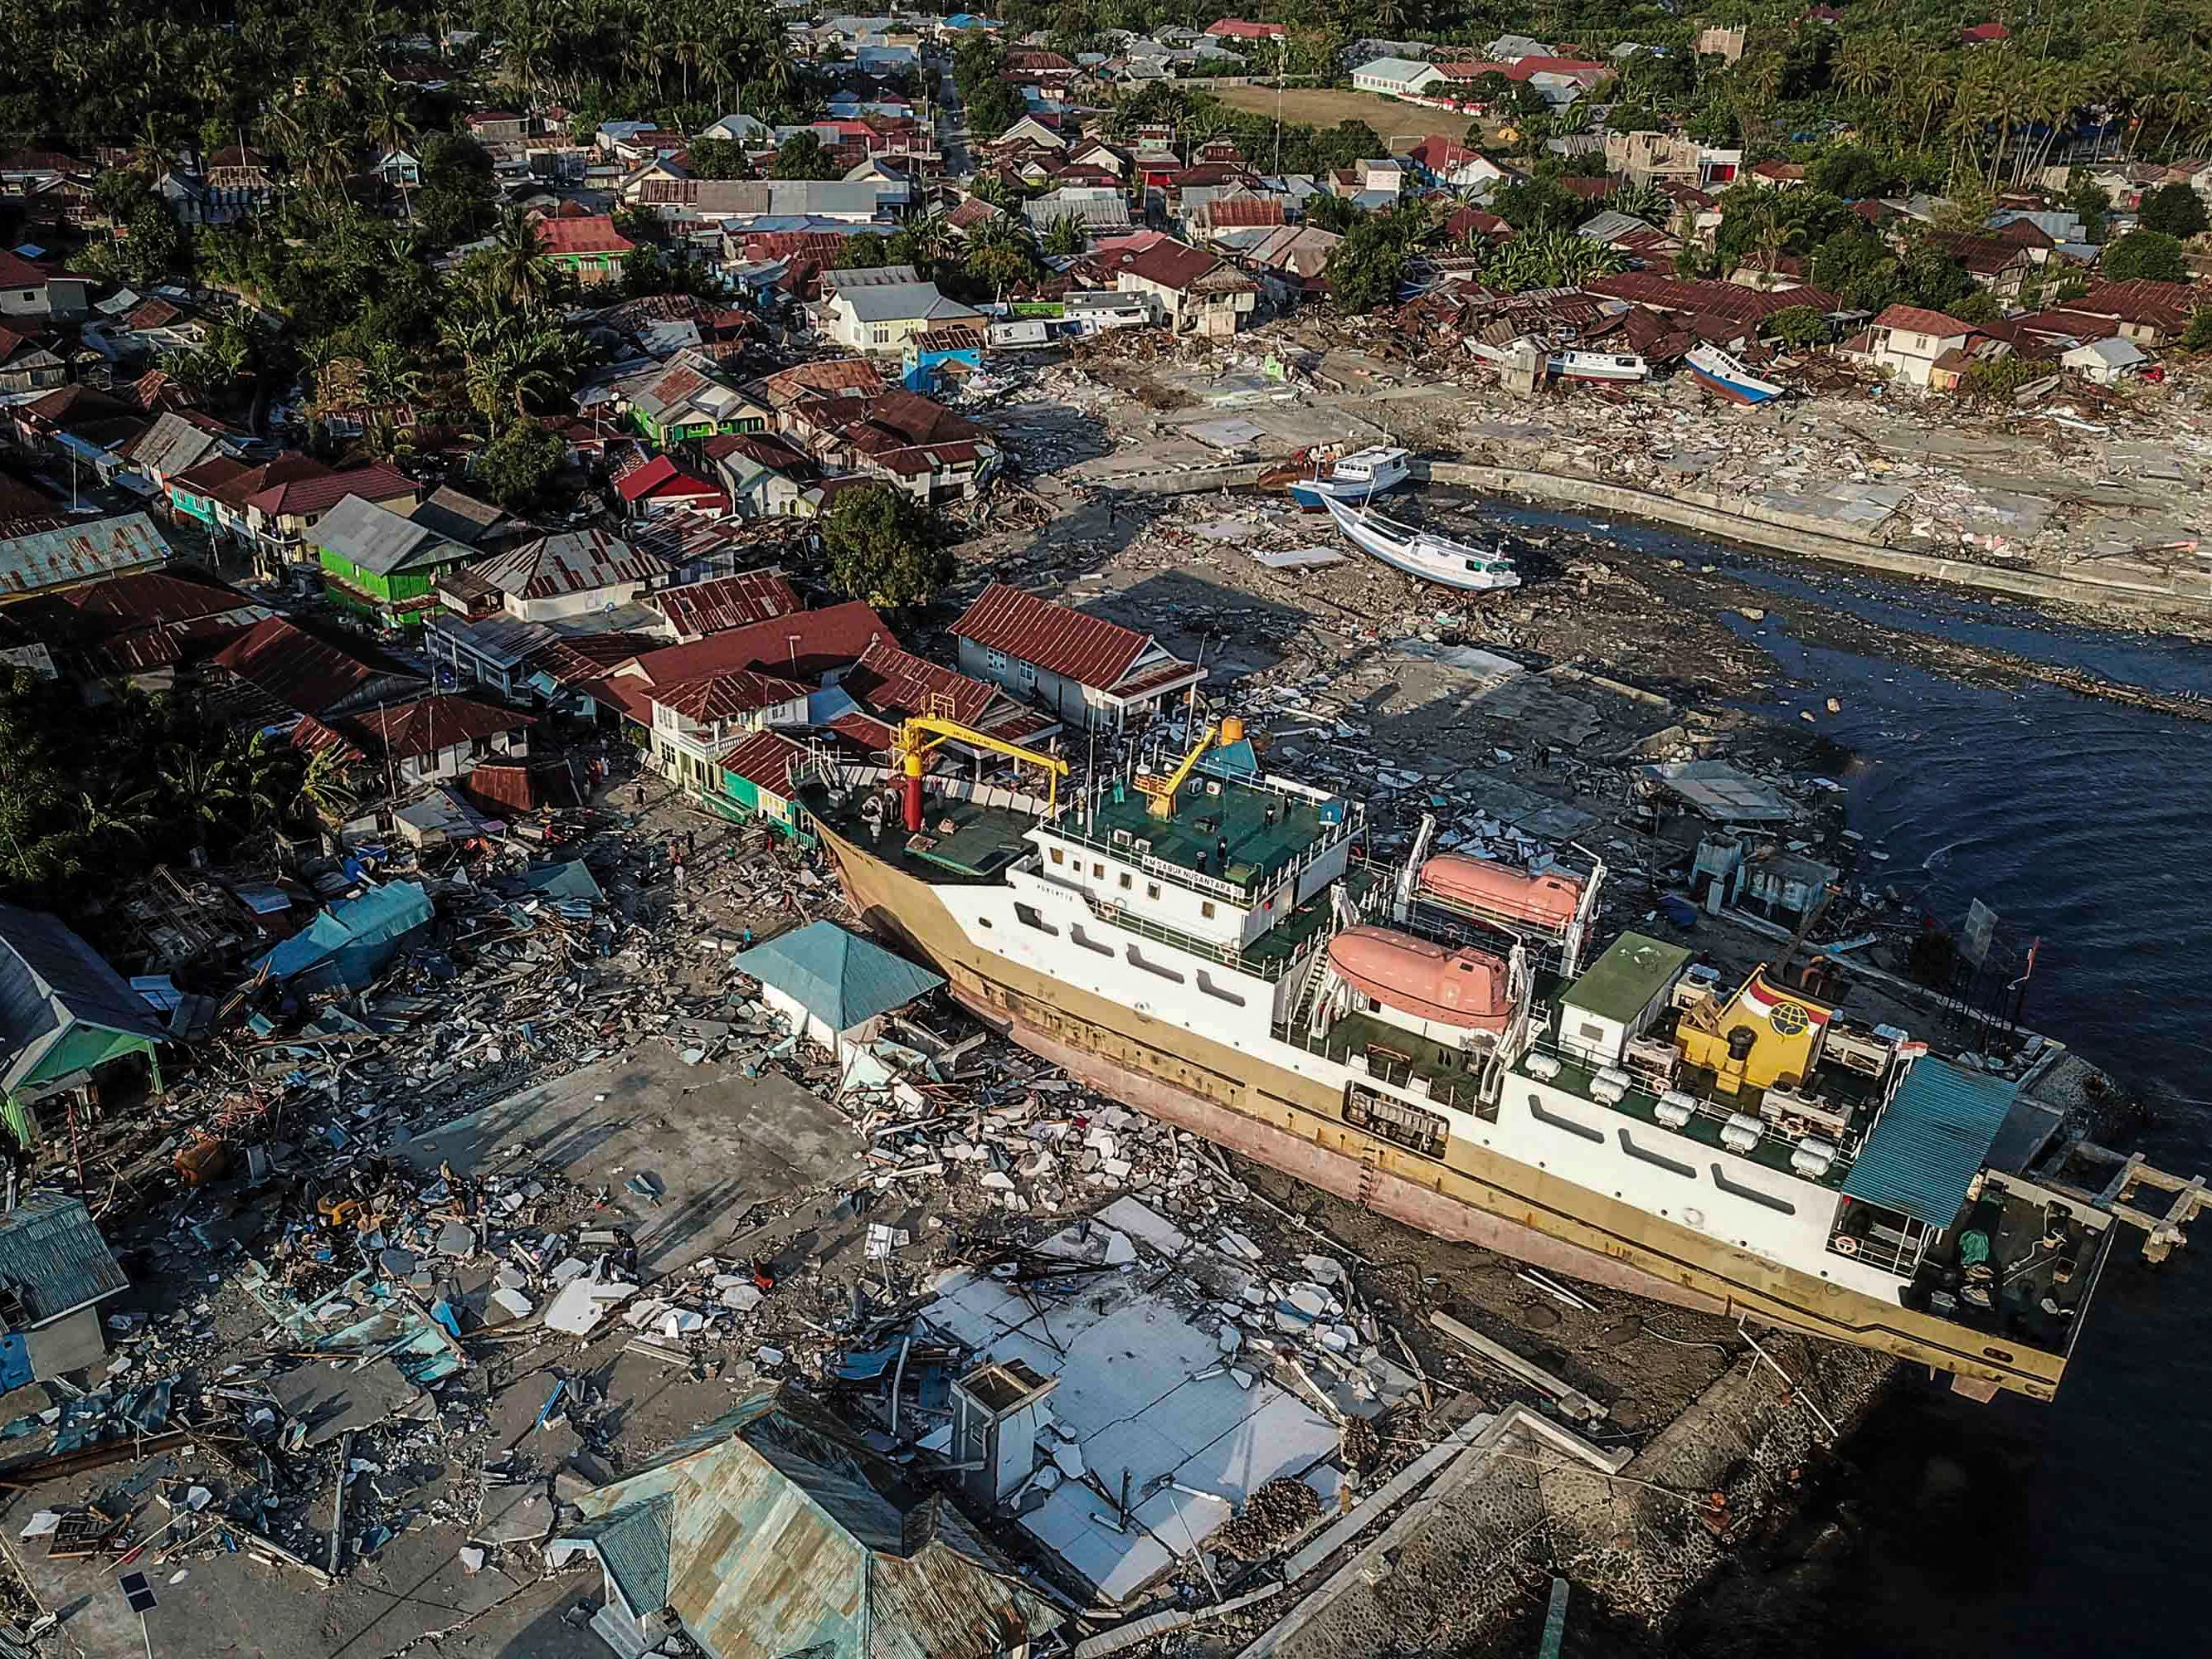 A picture taken with drone shows a ship stranded on the shore after tsunami hit the area in Wani, Donggala, Central Sulawesi, Indonesia, Oct. 1, 2018.